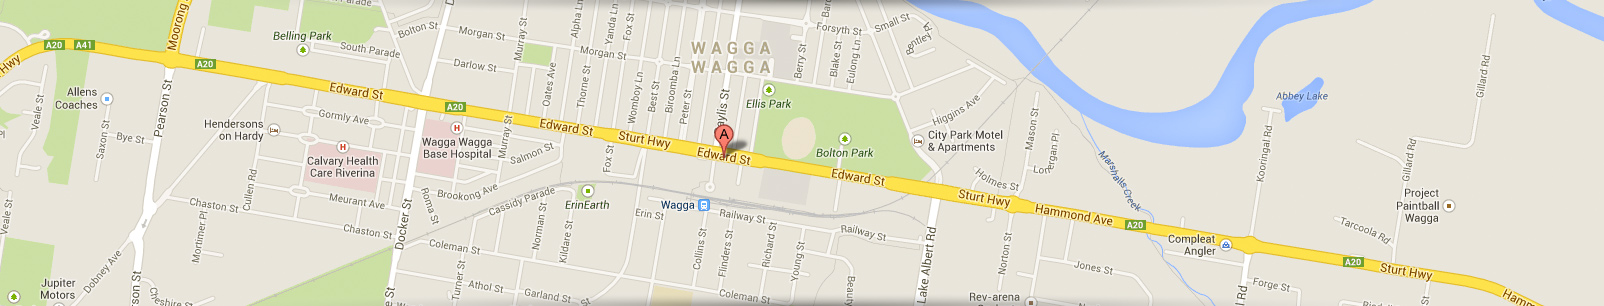 Wagga Hotel Motel Map Location